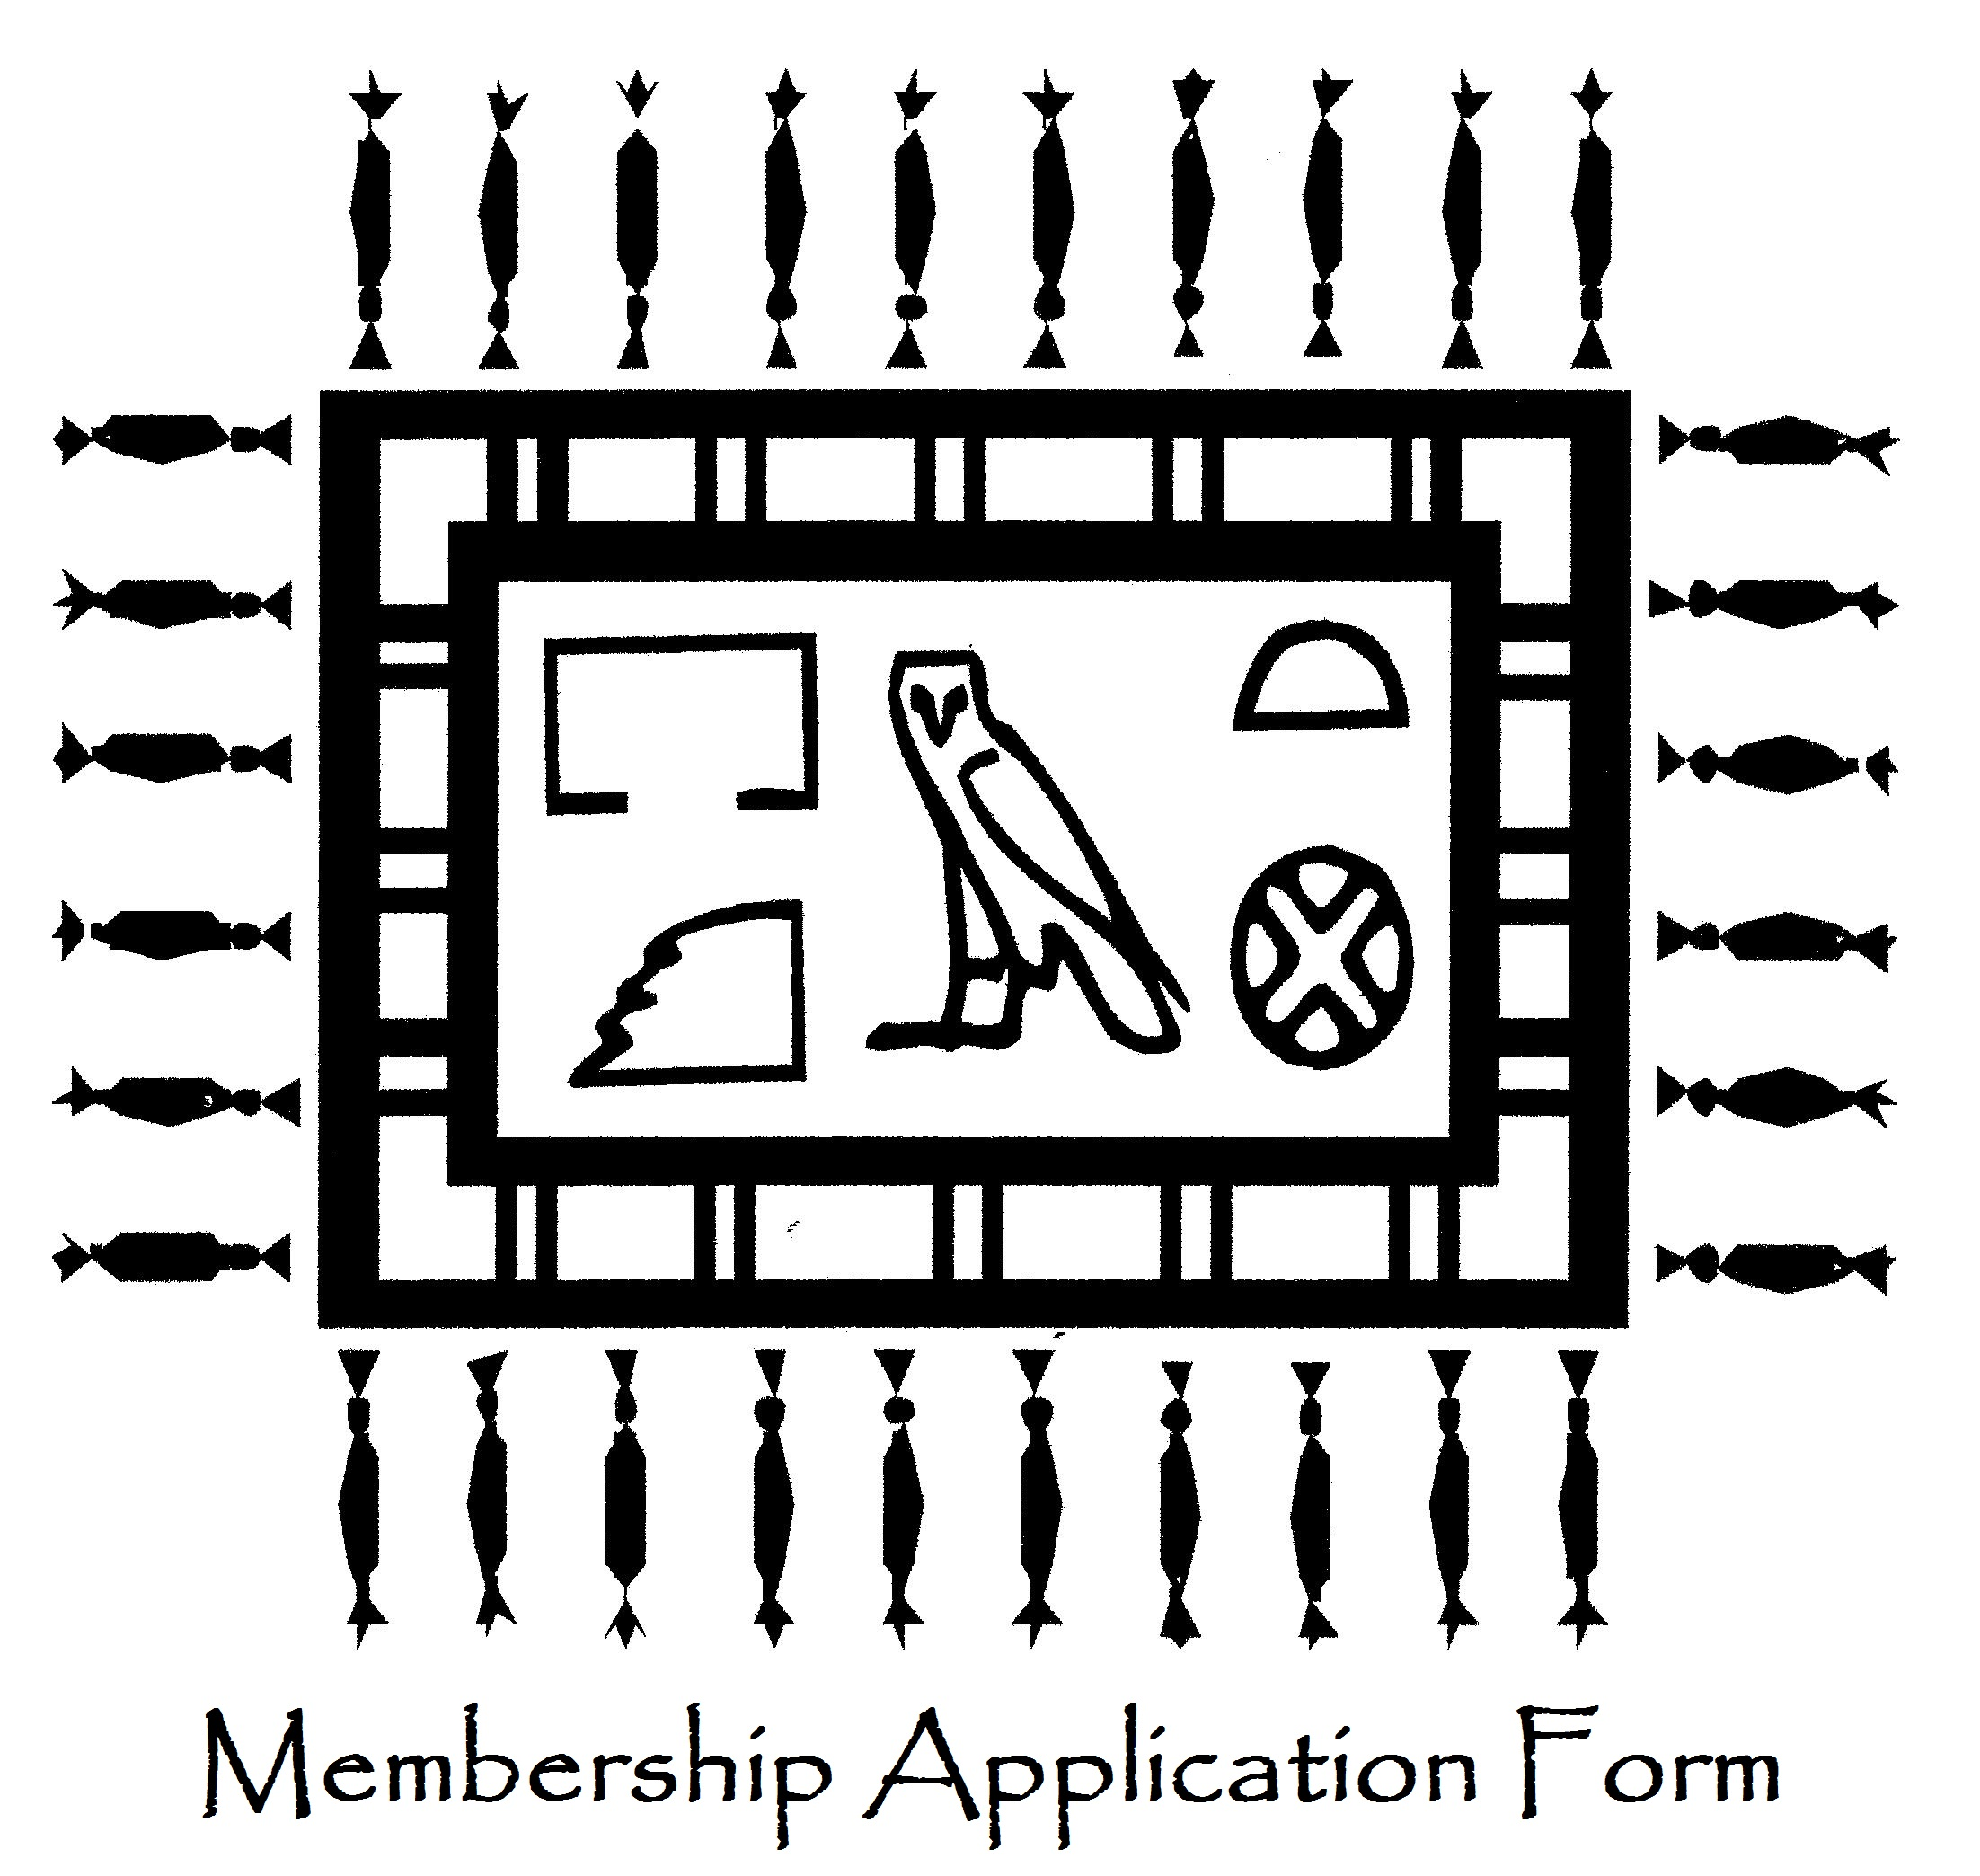 Membership application form image for website